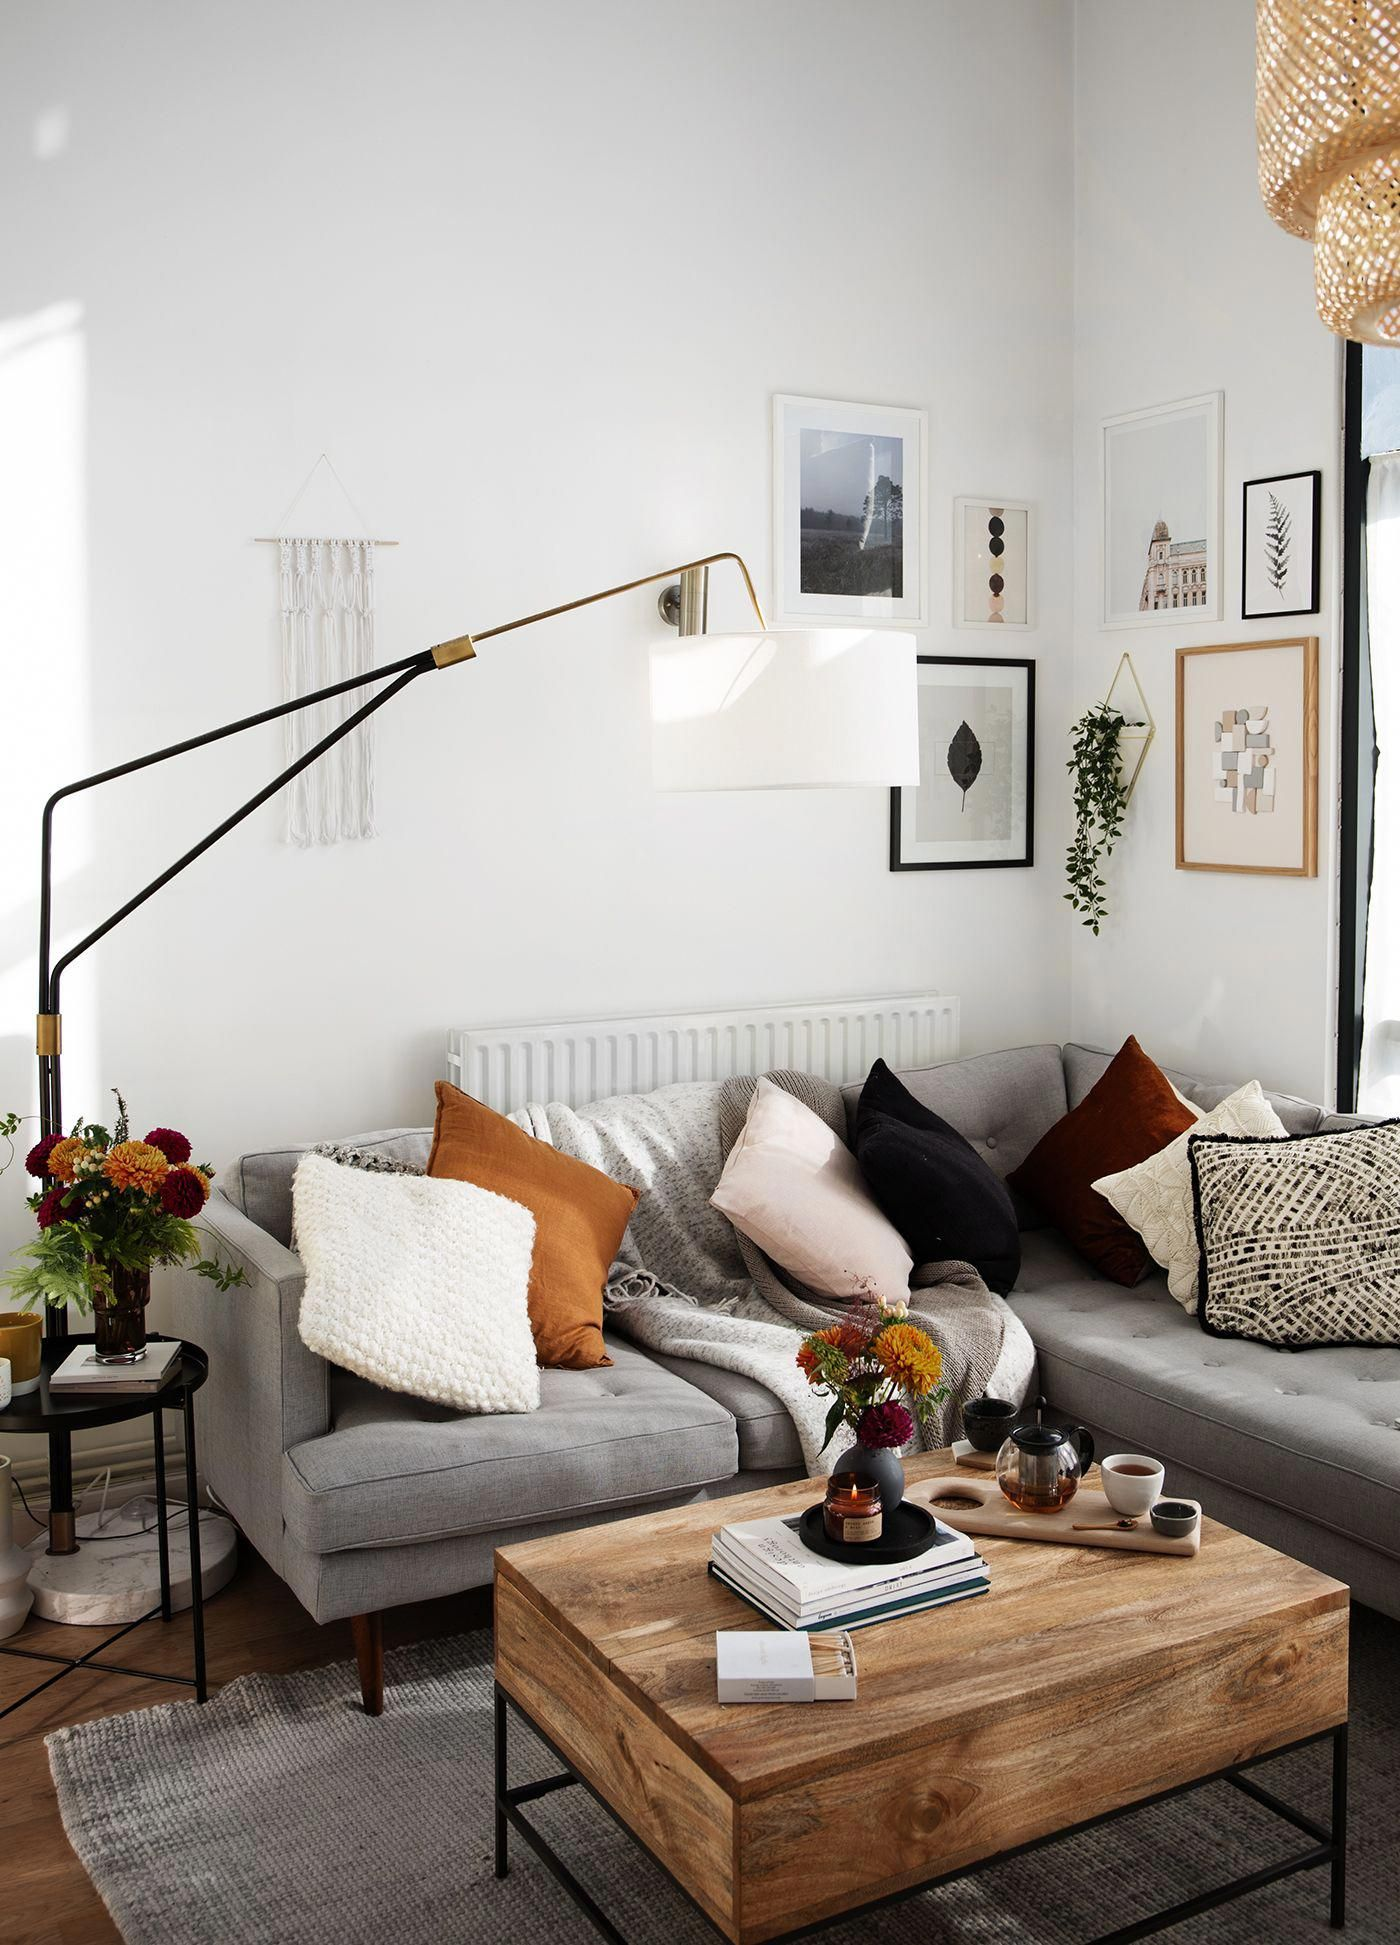 Living Room With A Bit Of A Rustic Industrial Feel Homedecor Livingroom Colors Throwpillows Living Room Scandinavian Living Room Inspo Living Room Decor #nice #decoration #for #living #room